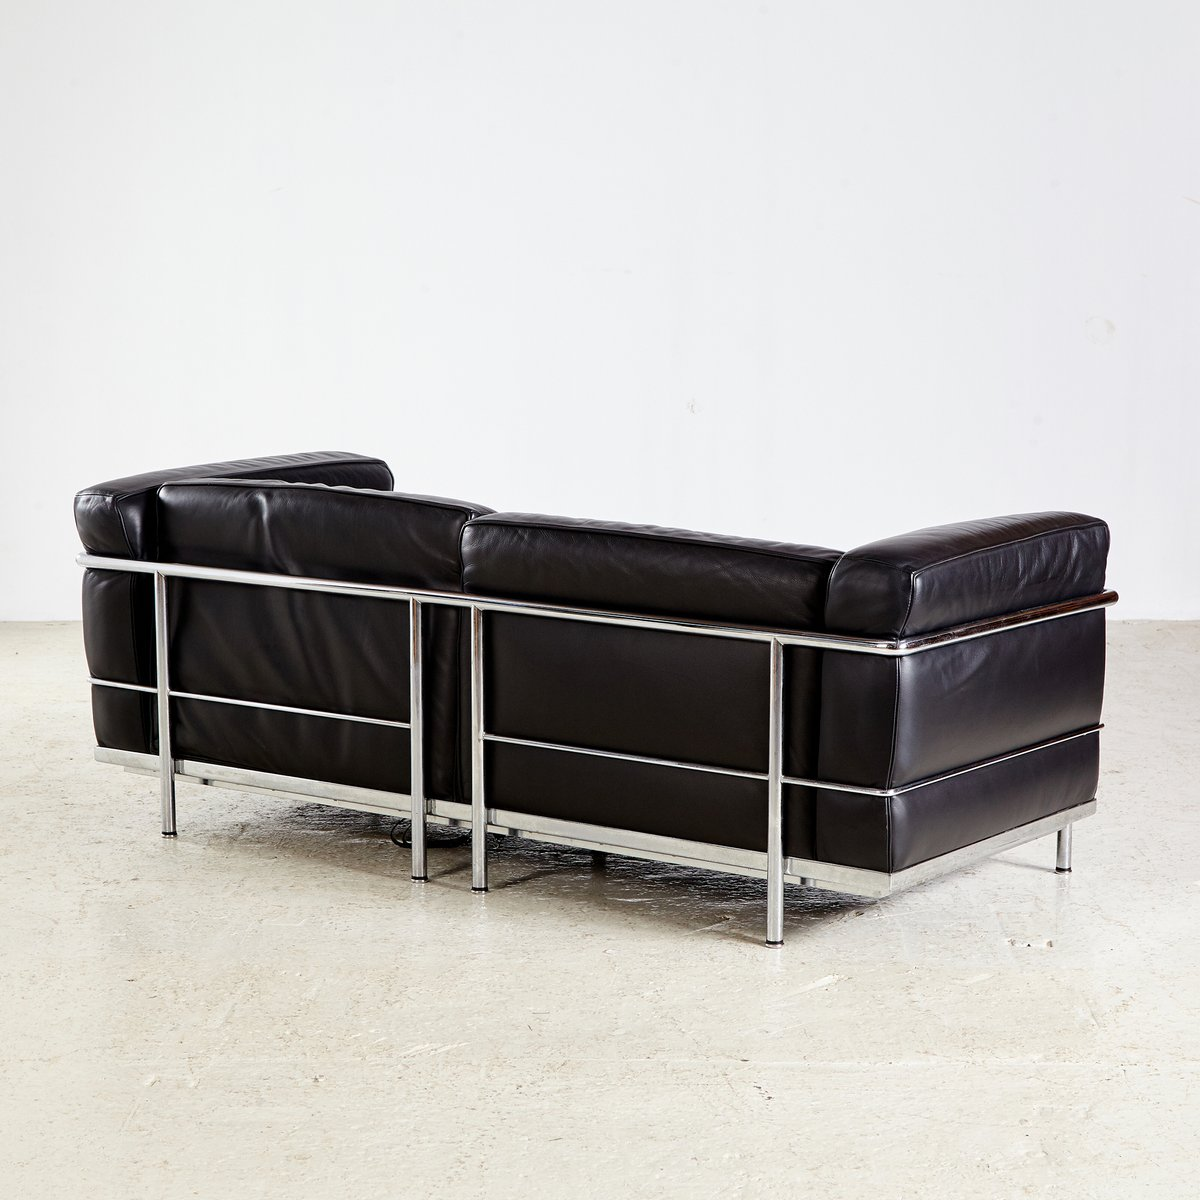 lc3 sofa reclining and loveseat microfiber by le corbusier pierre jeanneret charlotte